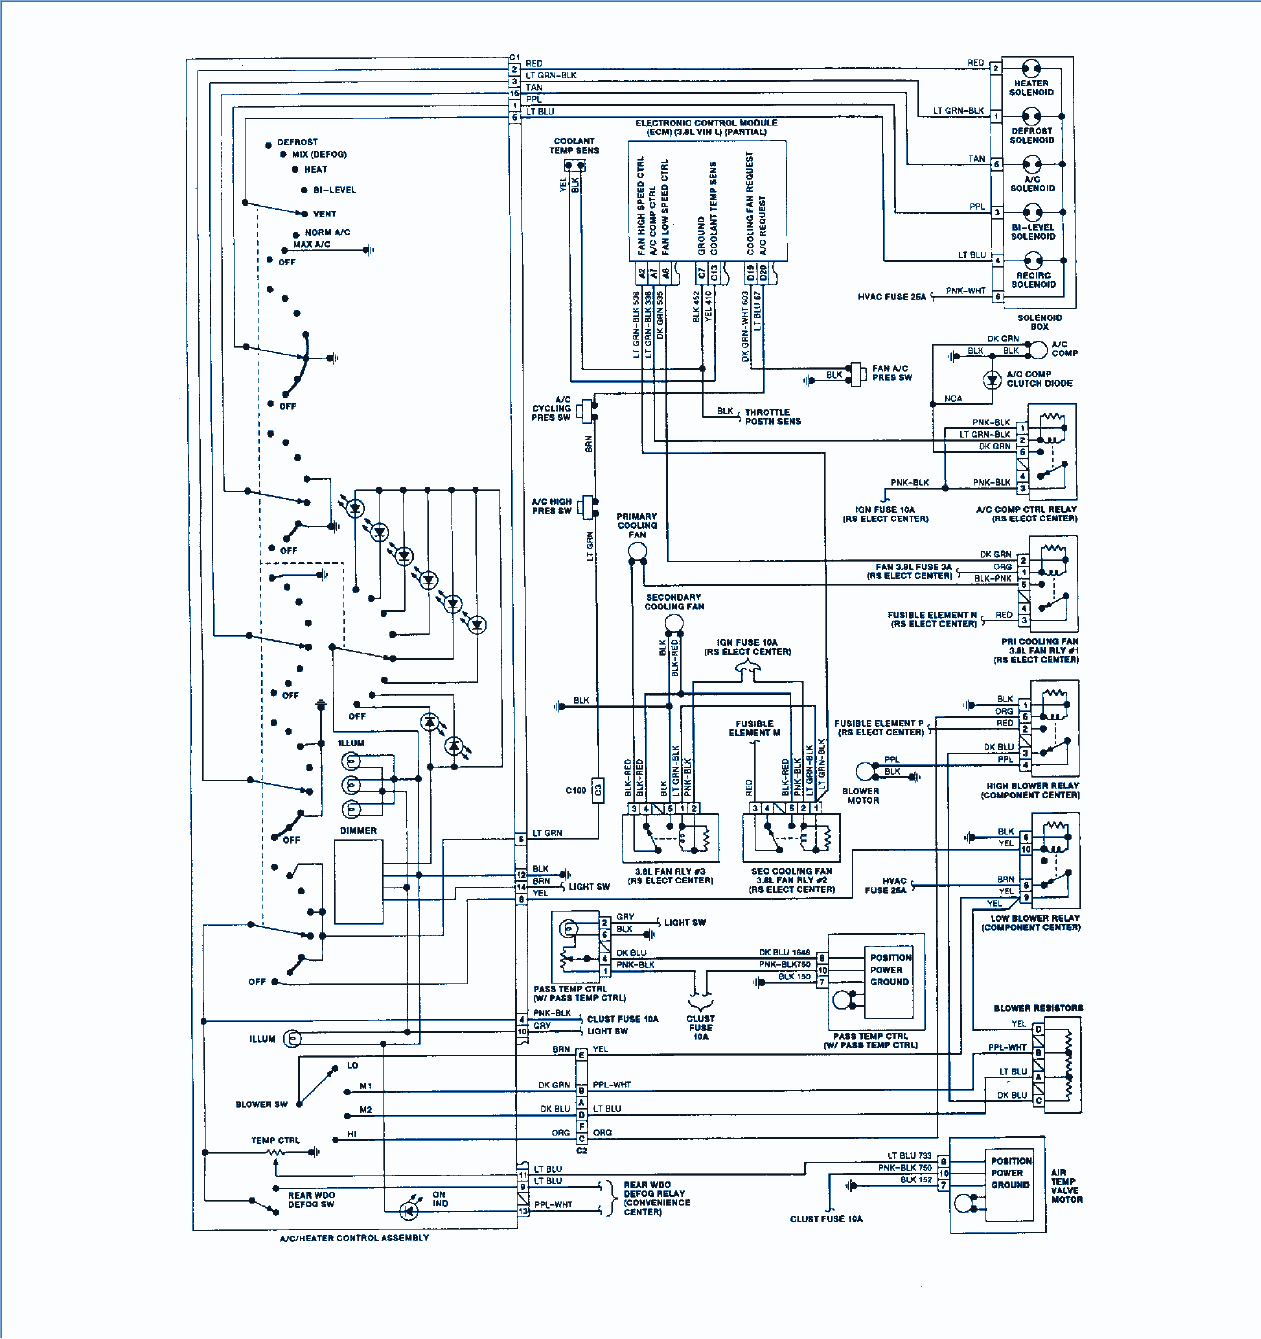 1992 Regal Buick Wiring Diagram